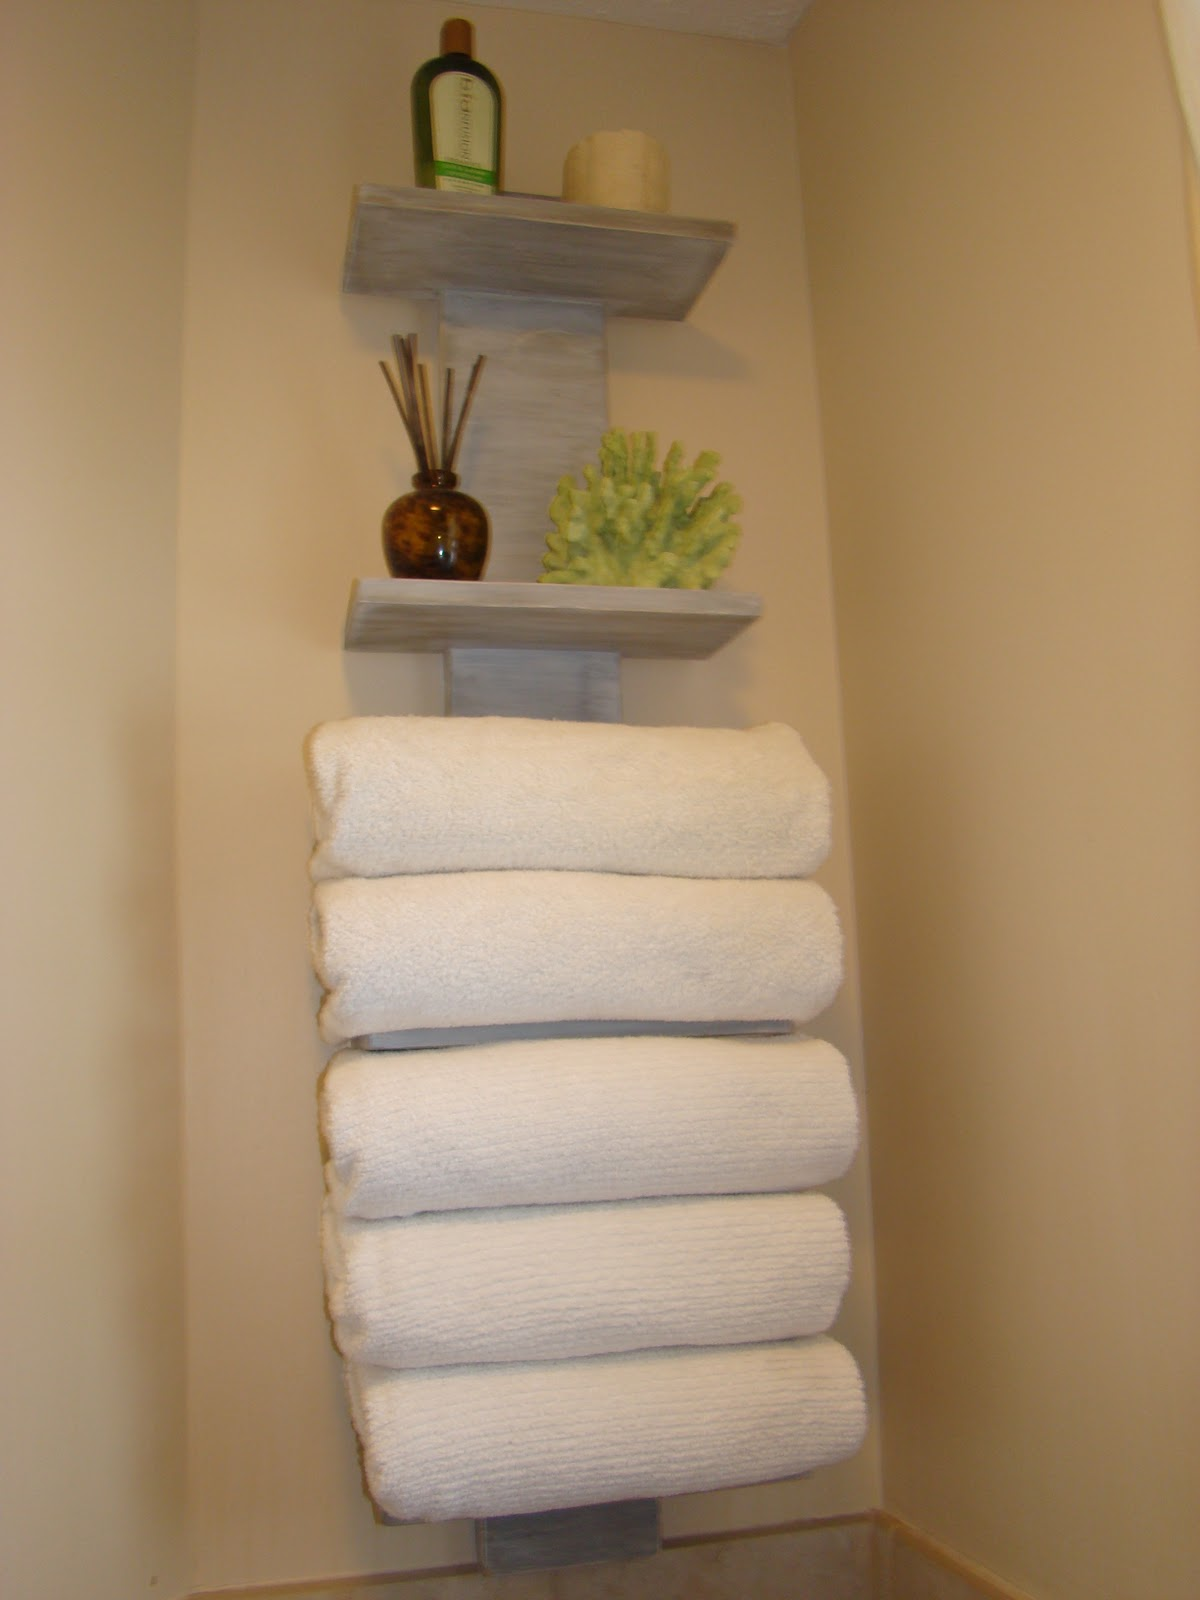 My bath FINALLY gets some towel storage!